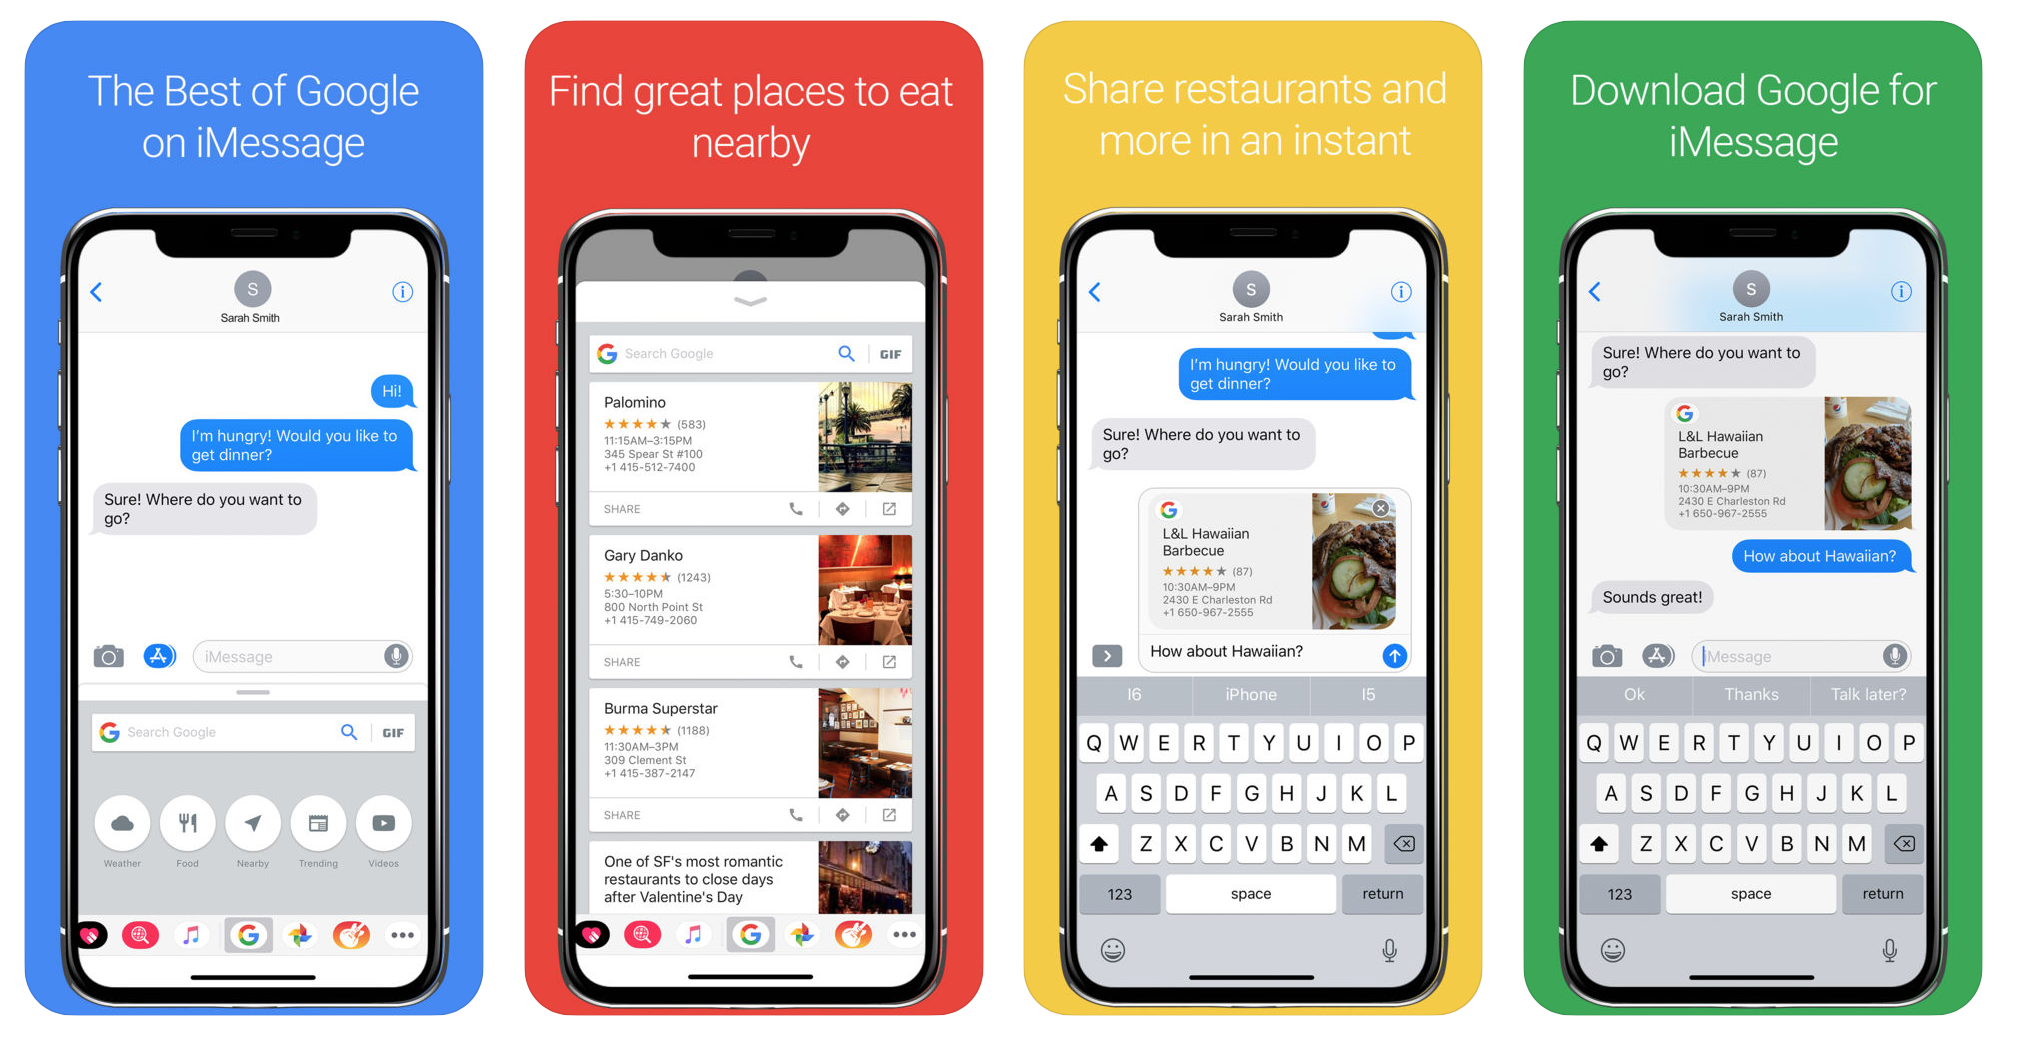 Google Search App for iMessage